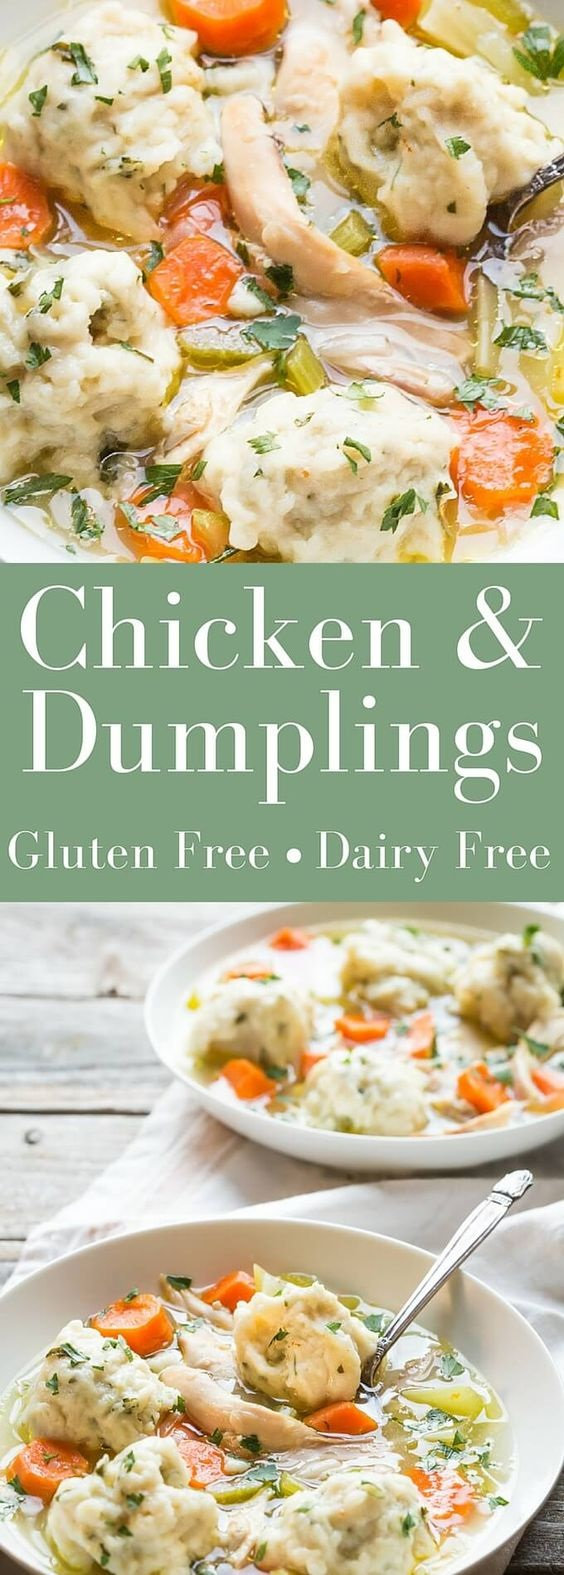 Best Ever Gluten Free Chicken and Dumplings!